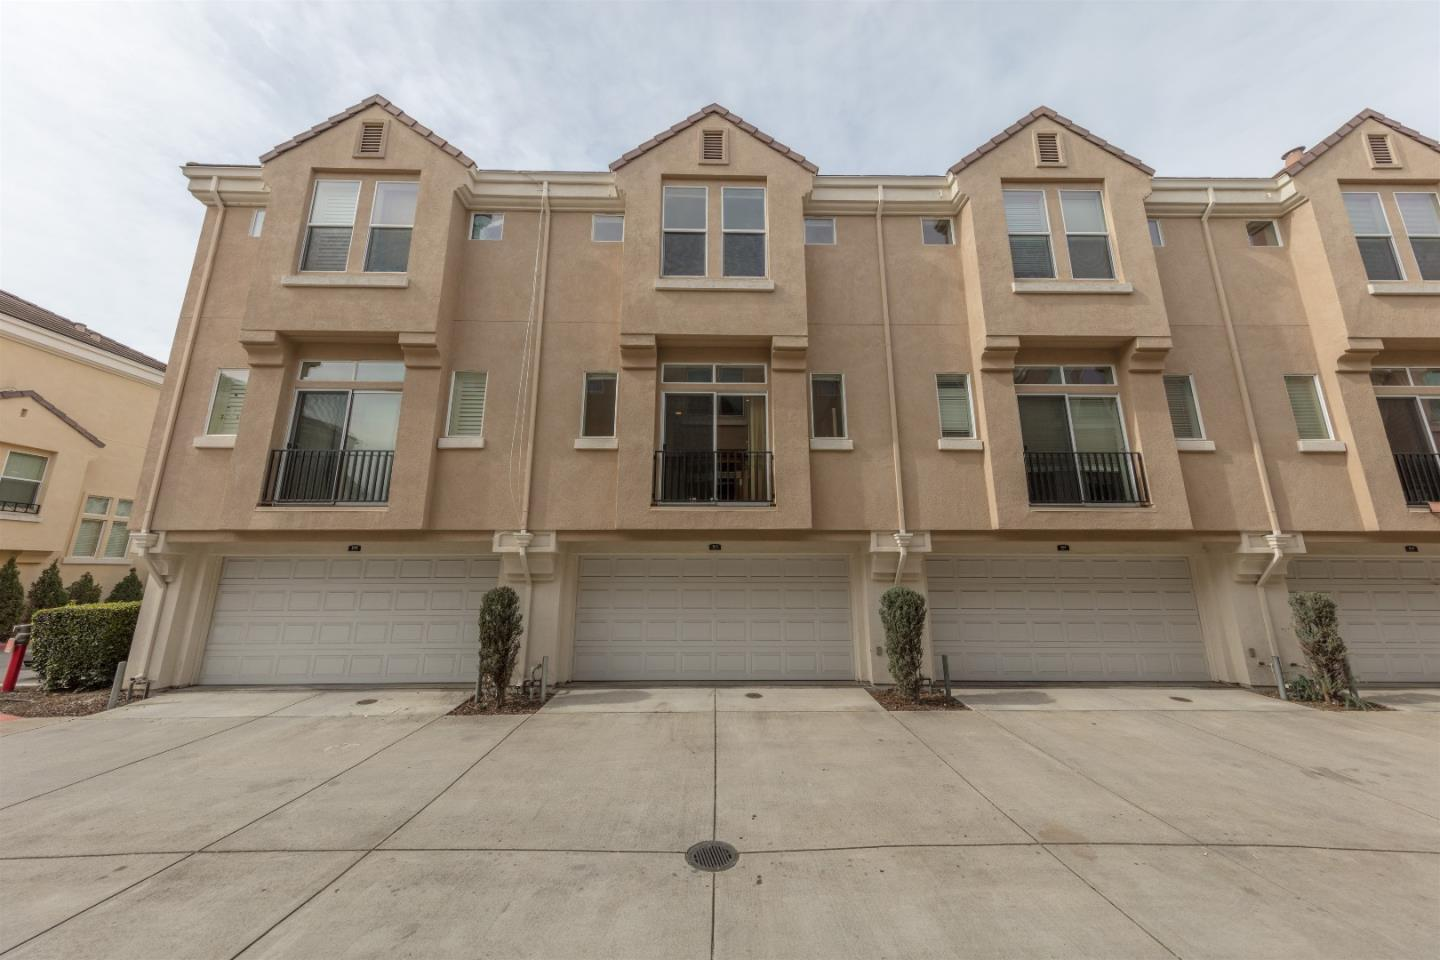 Additional photo for property listing at 162 Oberg Ct  MOUNTAIN VIEW, CALIFORNIA 94043